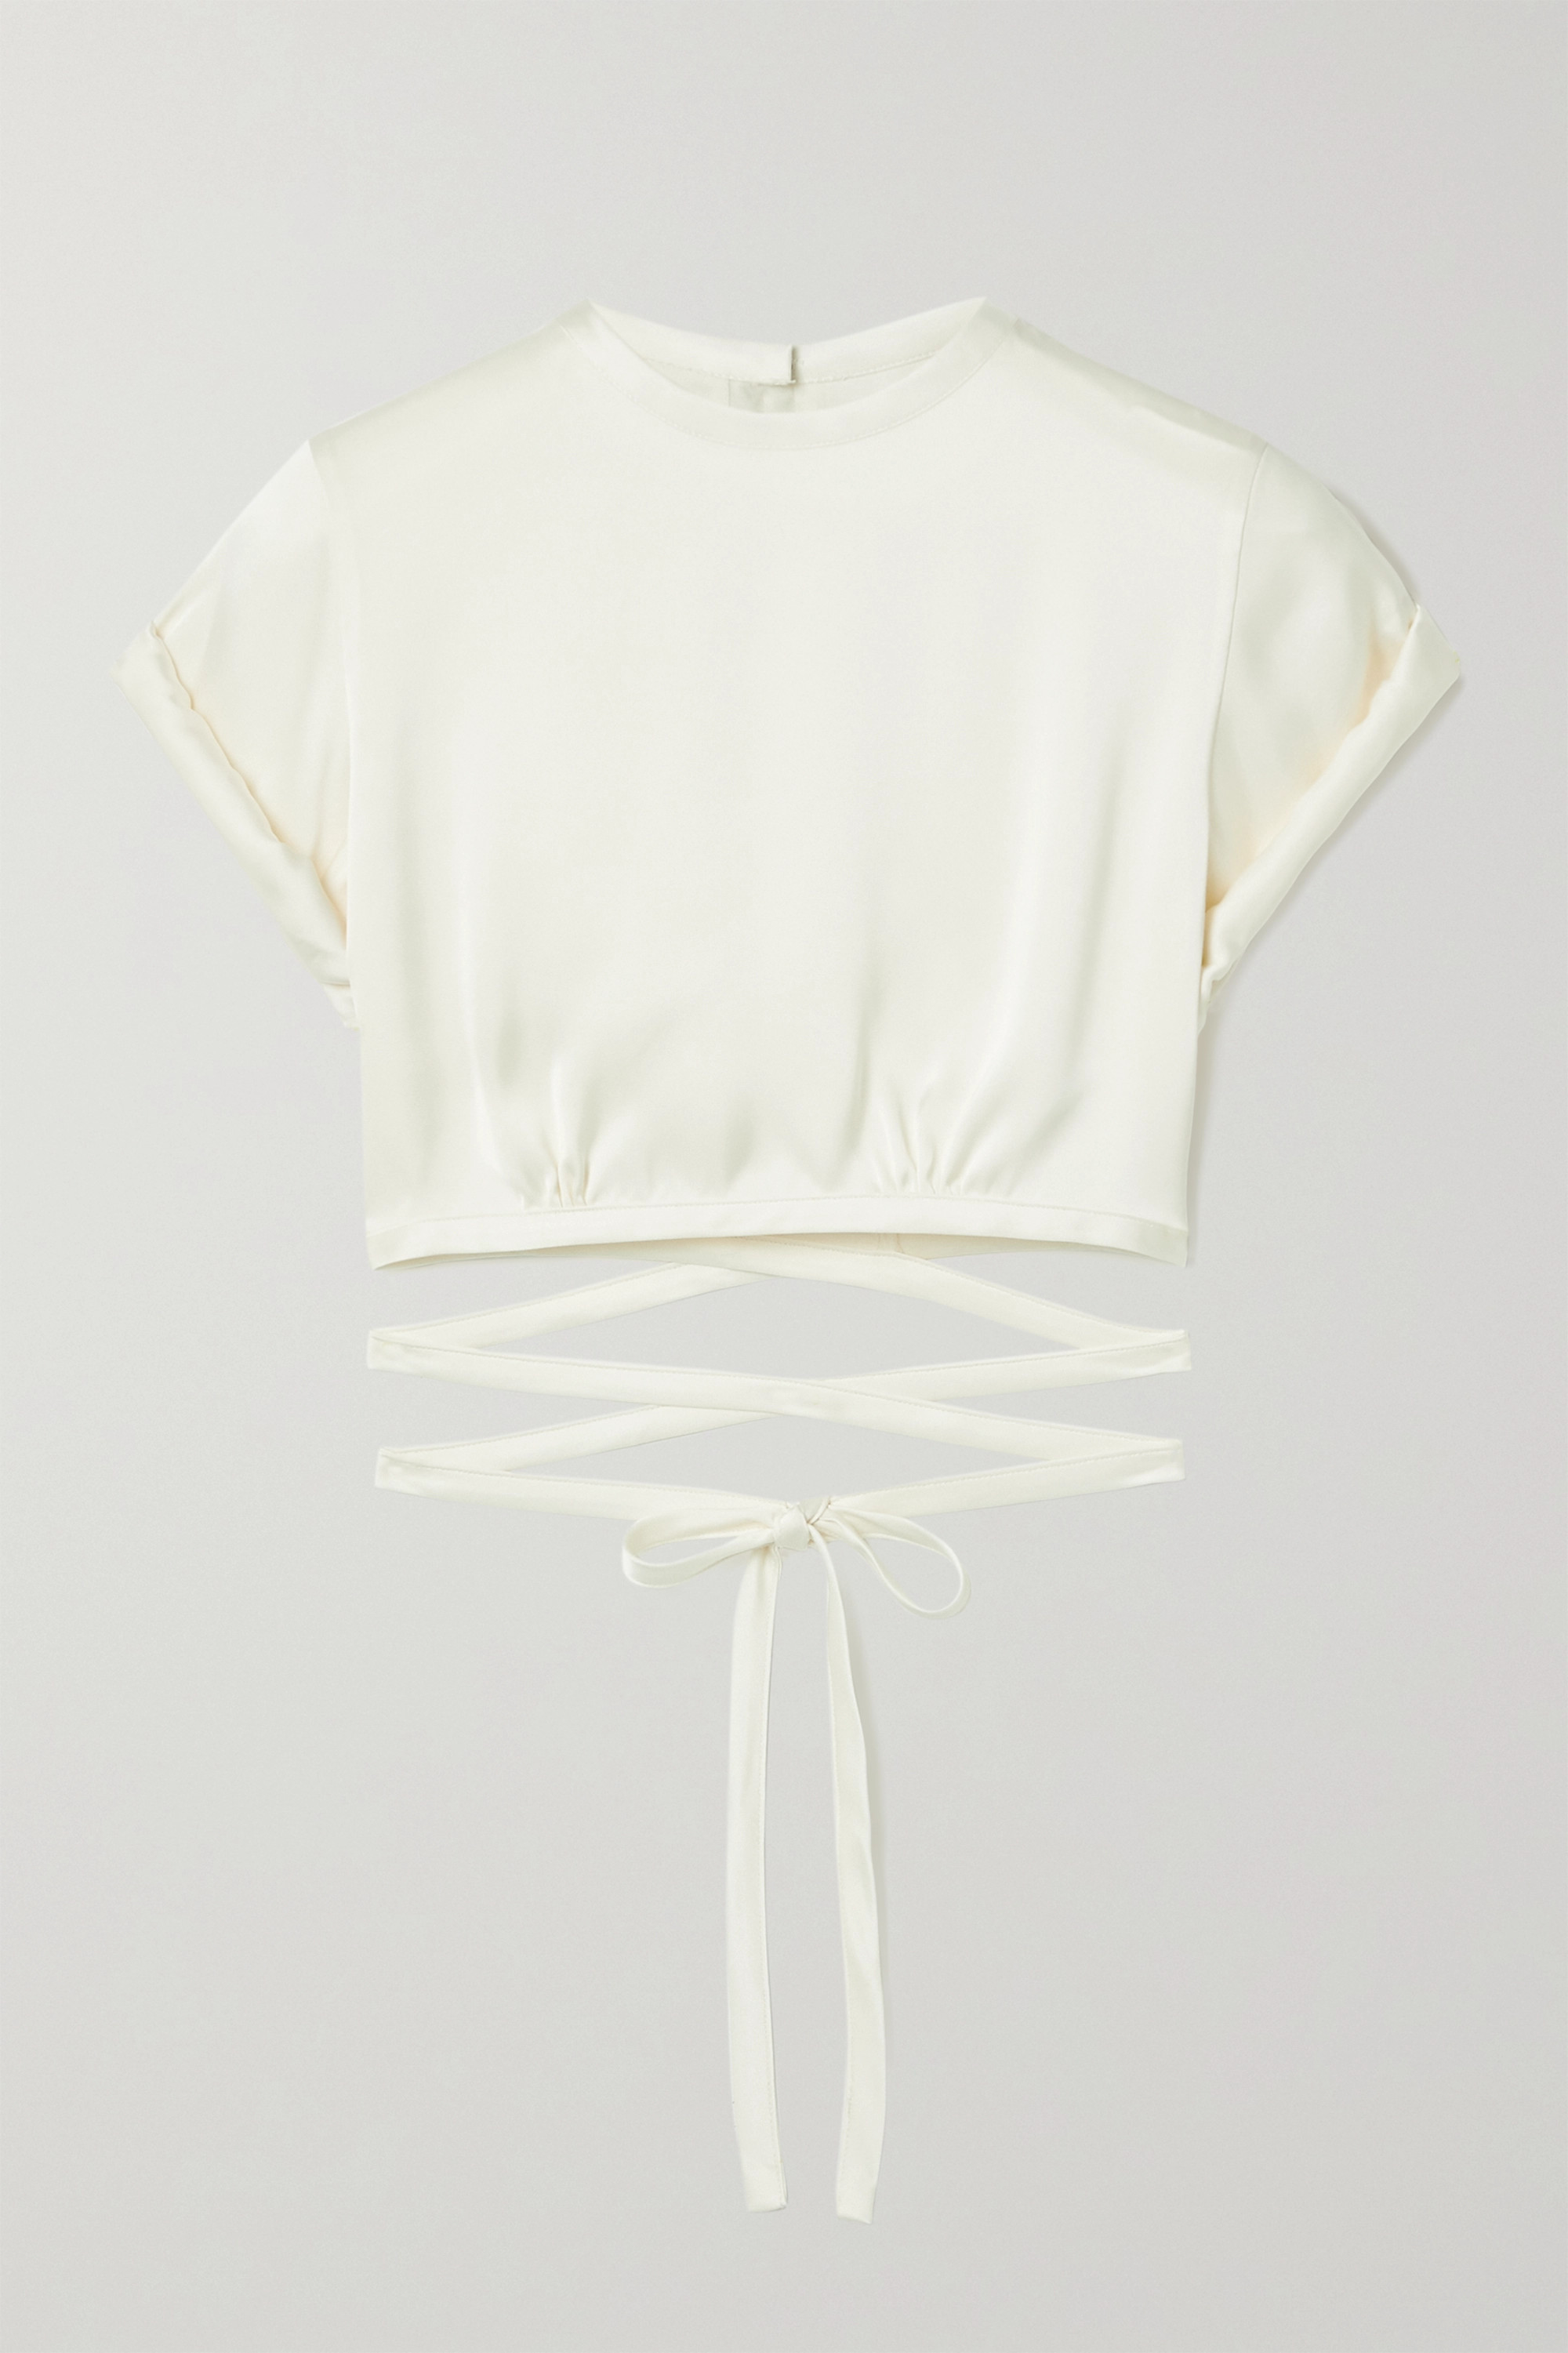 Orseund Iris Le Club cropped satin top